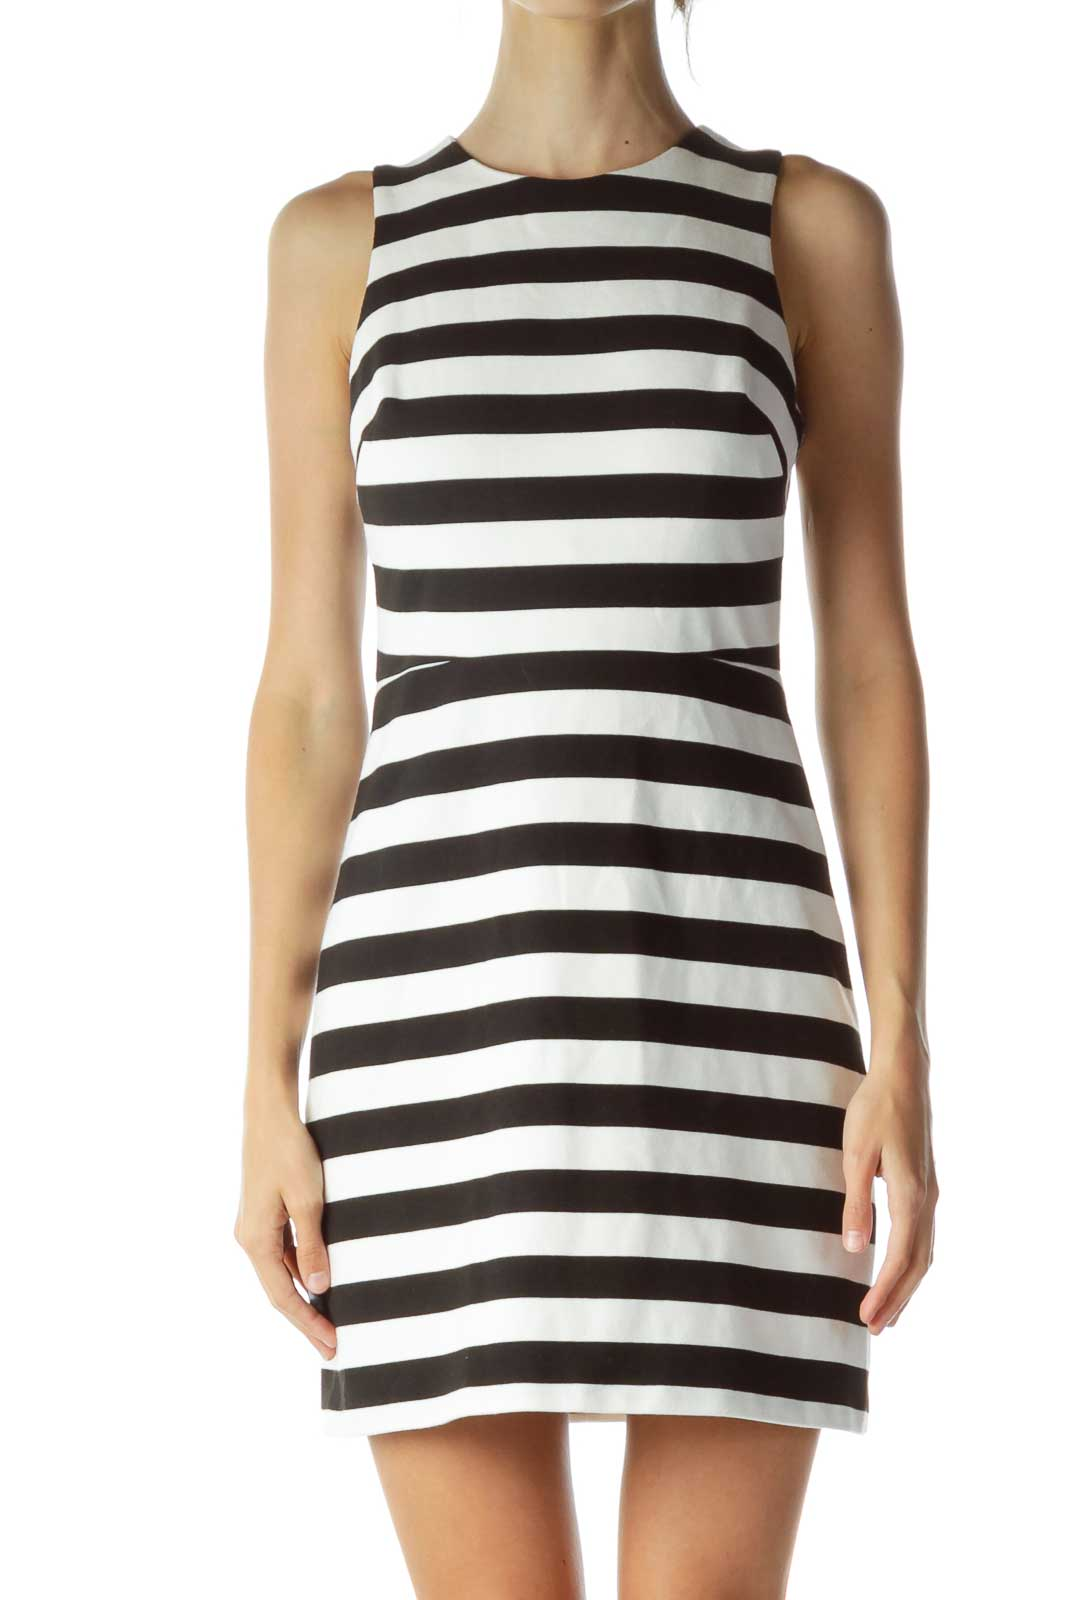 White Black Striped Cut-Out Cocktail Dress Front